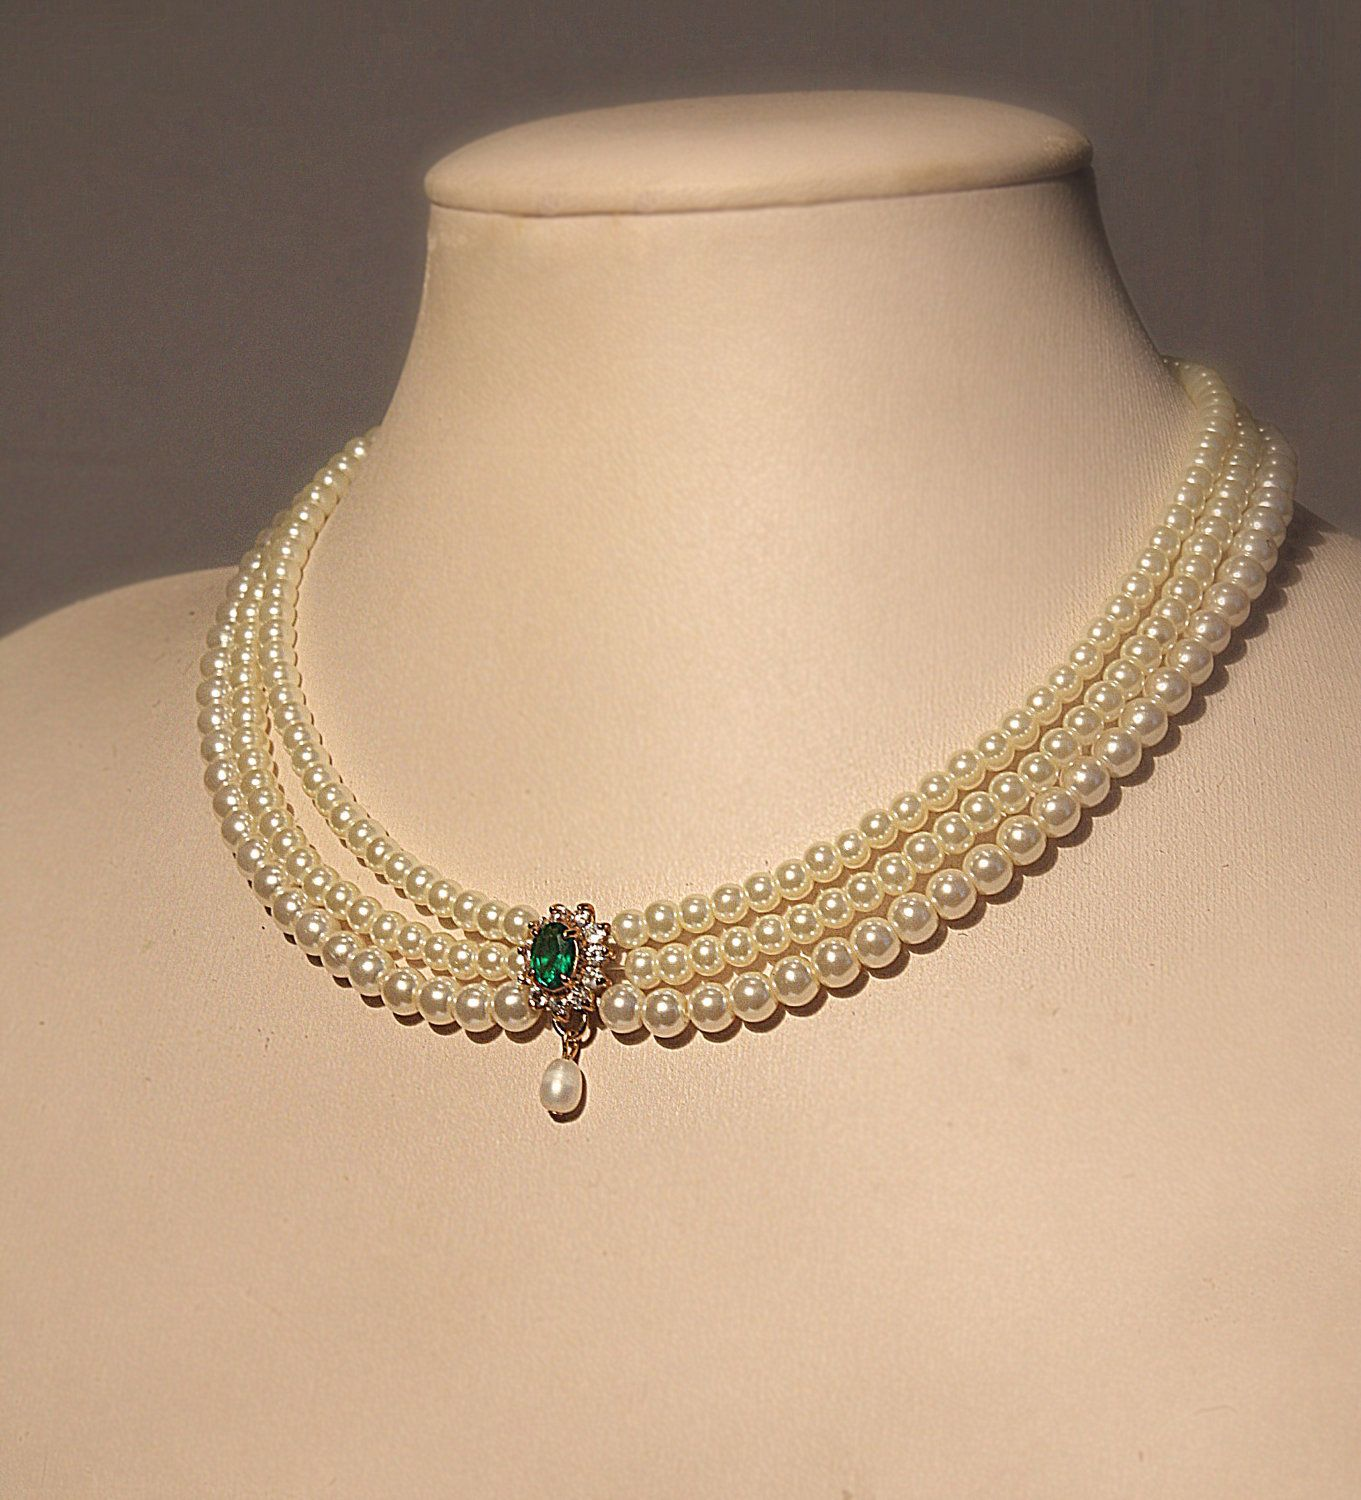 wedding necklaces Bridal Necklace Emerald Green Stone Vintage Bridal Pearls Necklace Statement Choker Pearl Wedding Choker Rhinestone Zirconium Pearls Strand